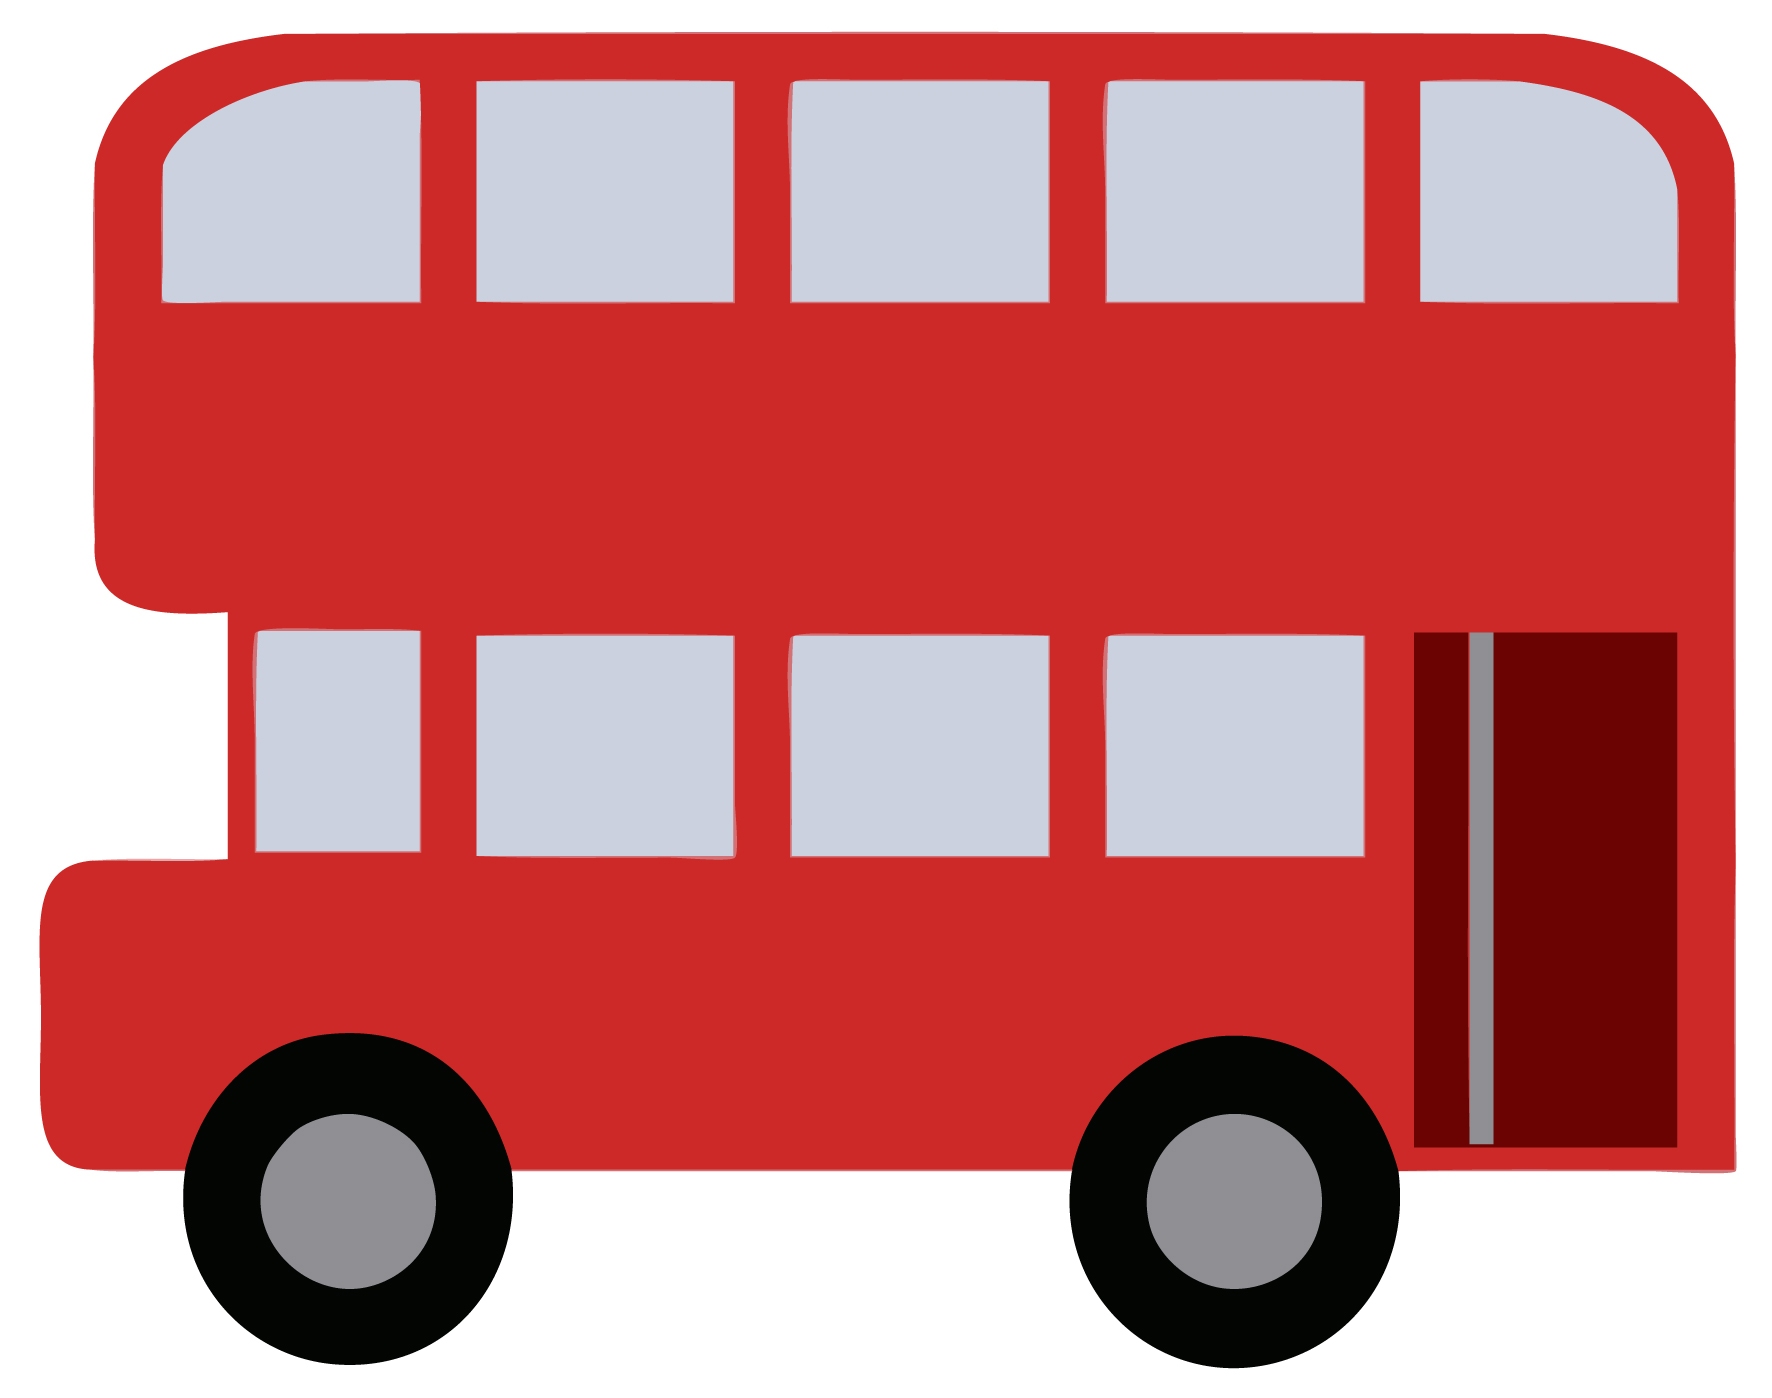 Bus Free Early Years Amp Primary Teaching Resources EYFS